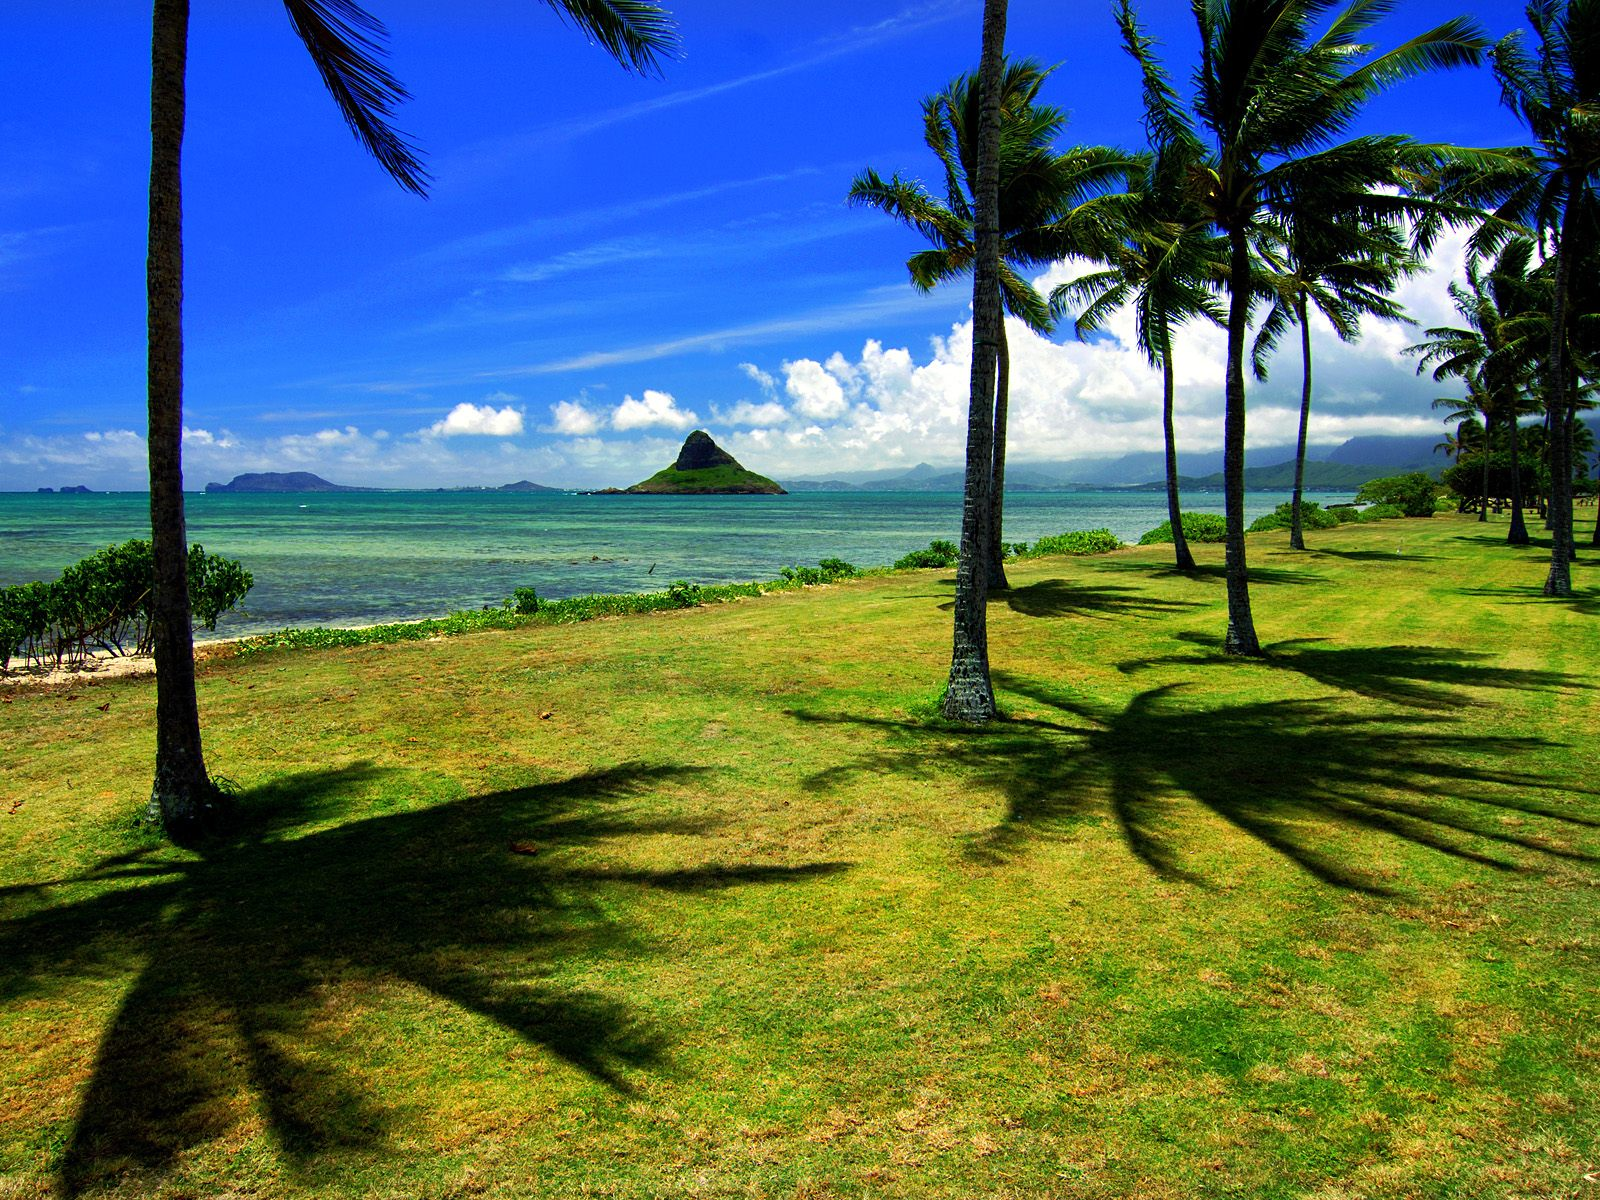 Chinaman's Hat Hawaii 543.22 Kb